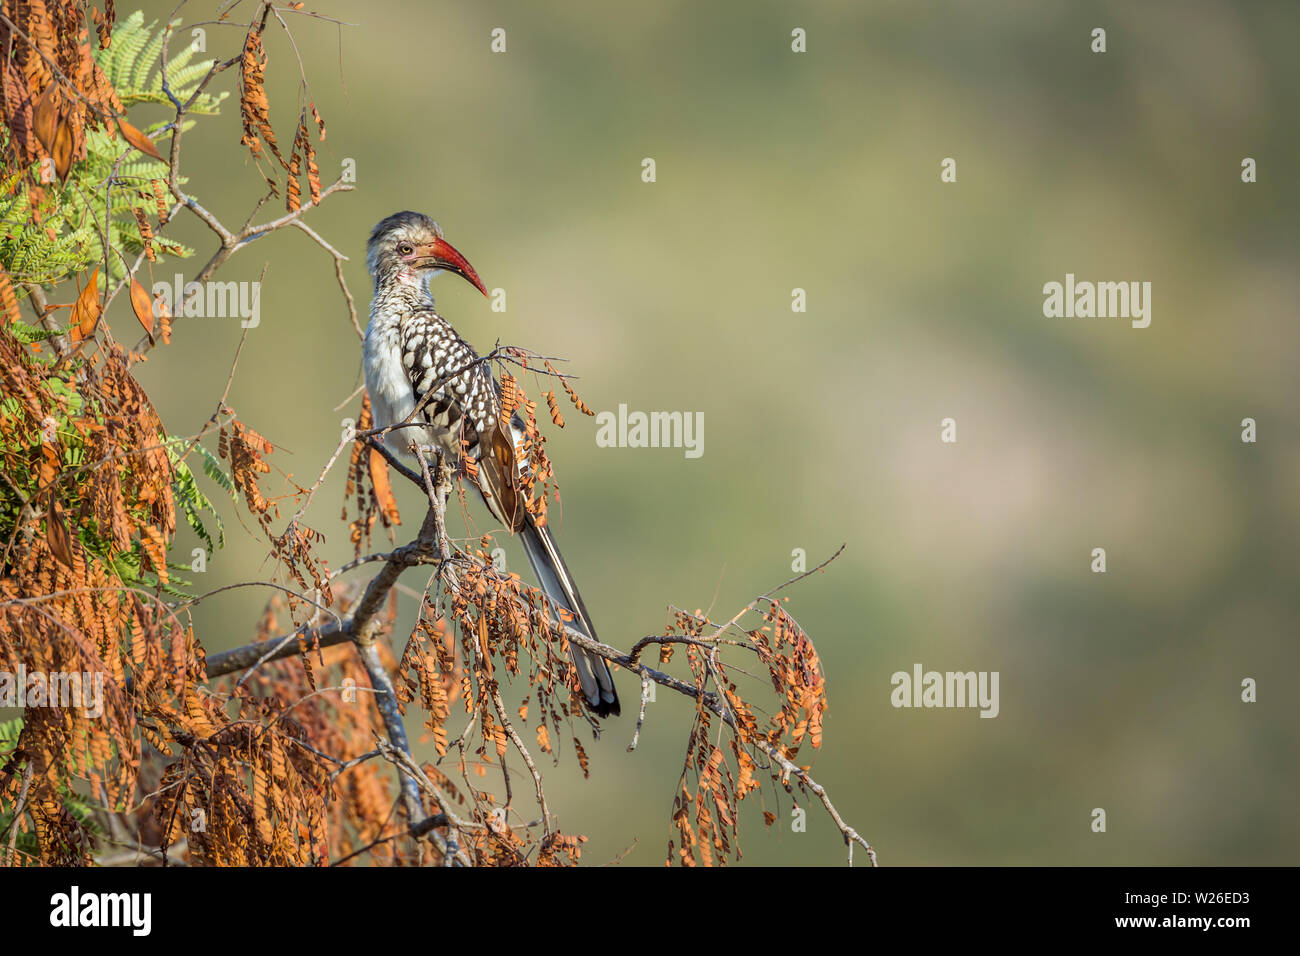 Southern Red billed Hornbill isolated in natural background in Kruger National park, South Africa ; Specie Tockus rufirostris family of Bucerotidae Stock Photo